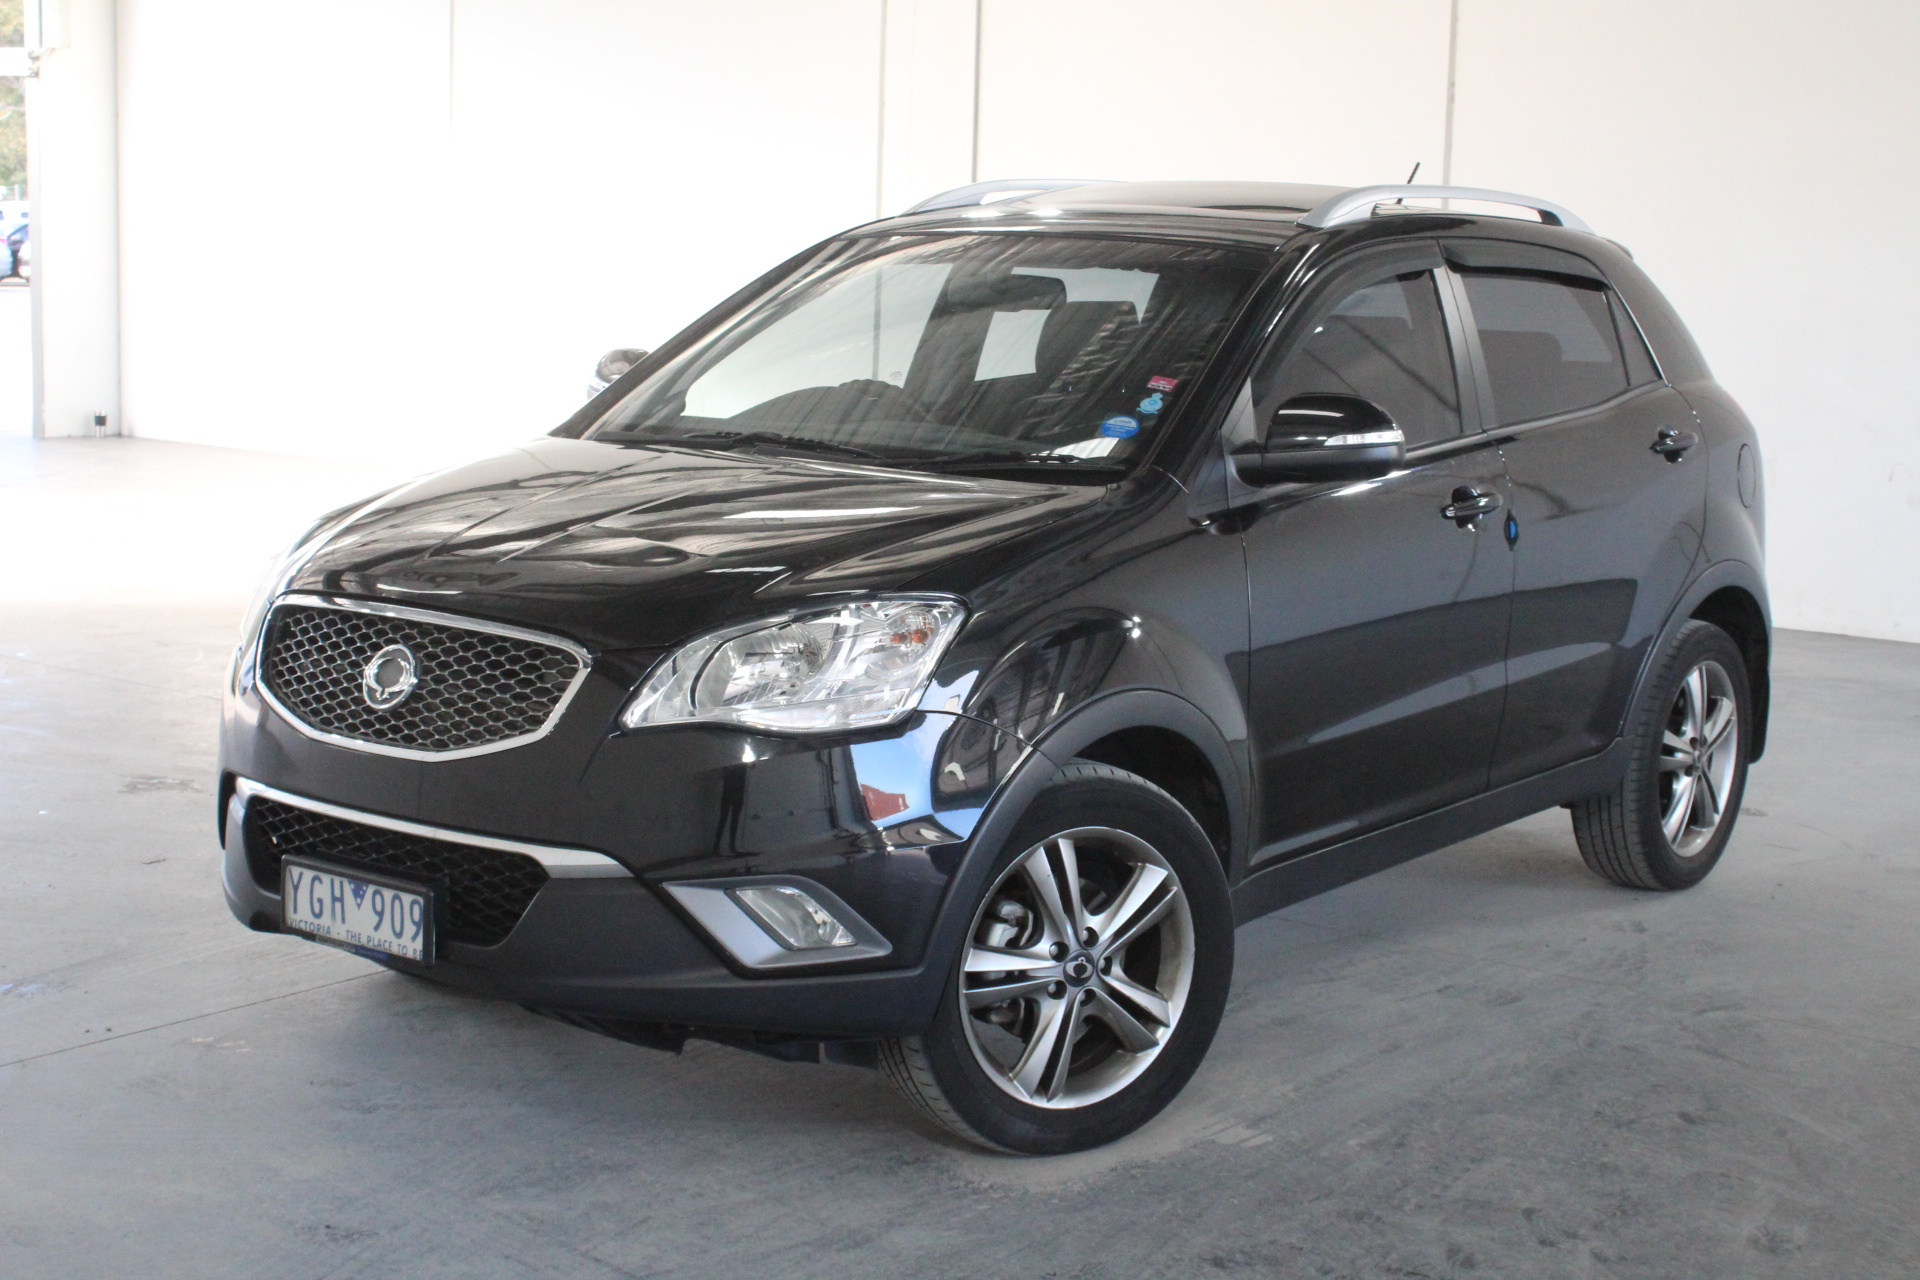 2011 Ssangyong Korando SPR T/Diesel Auto Wagon, 71,236 KMs indicated